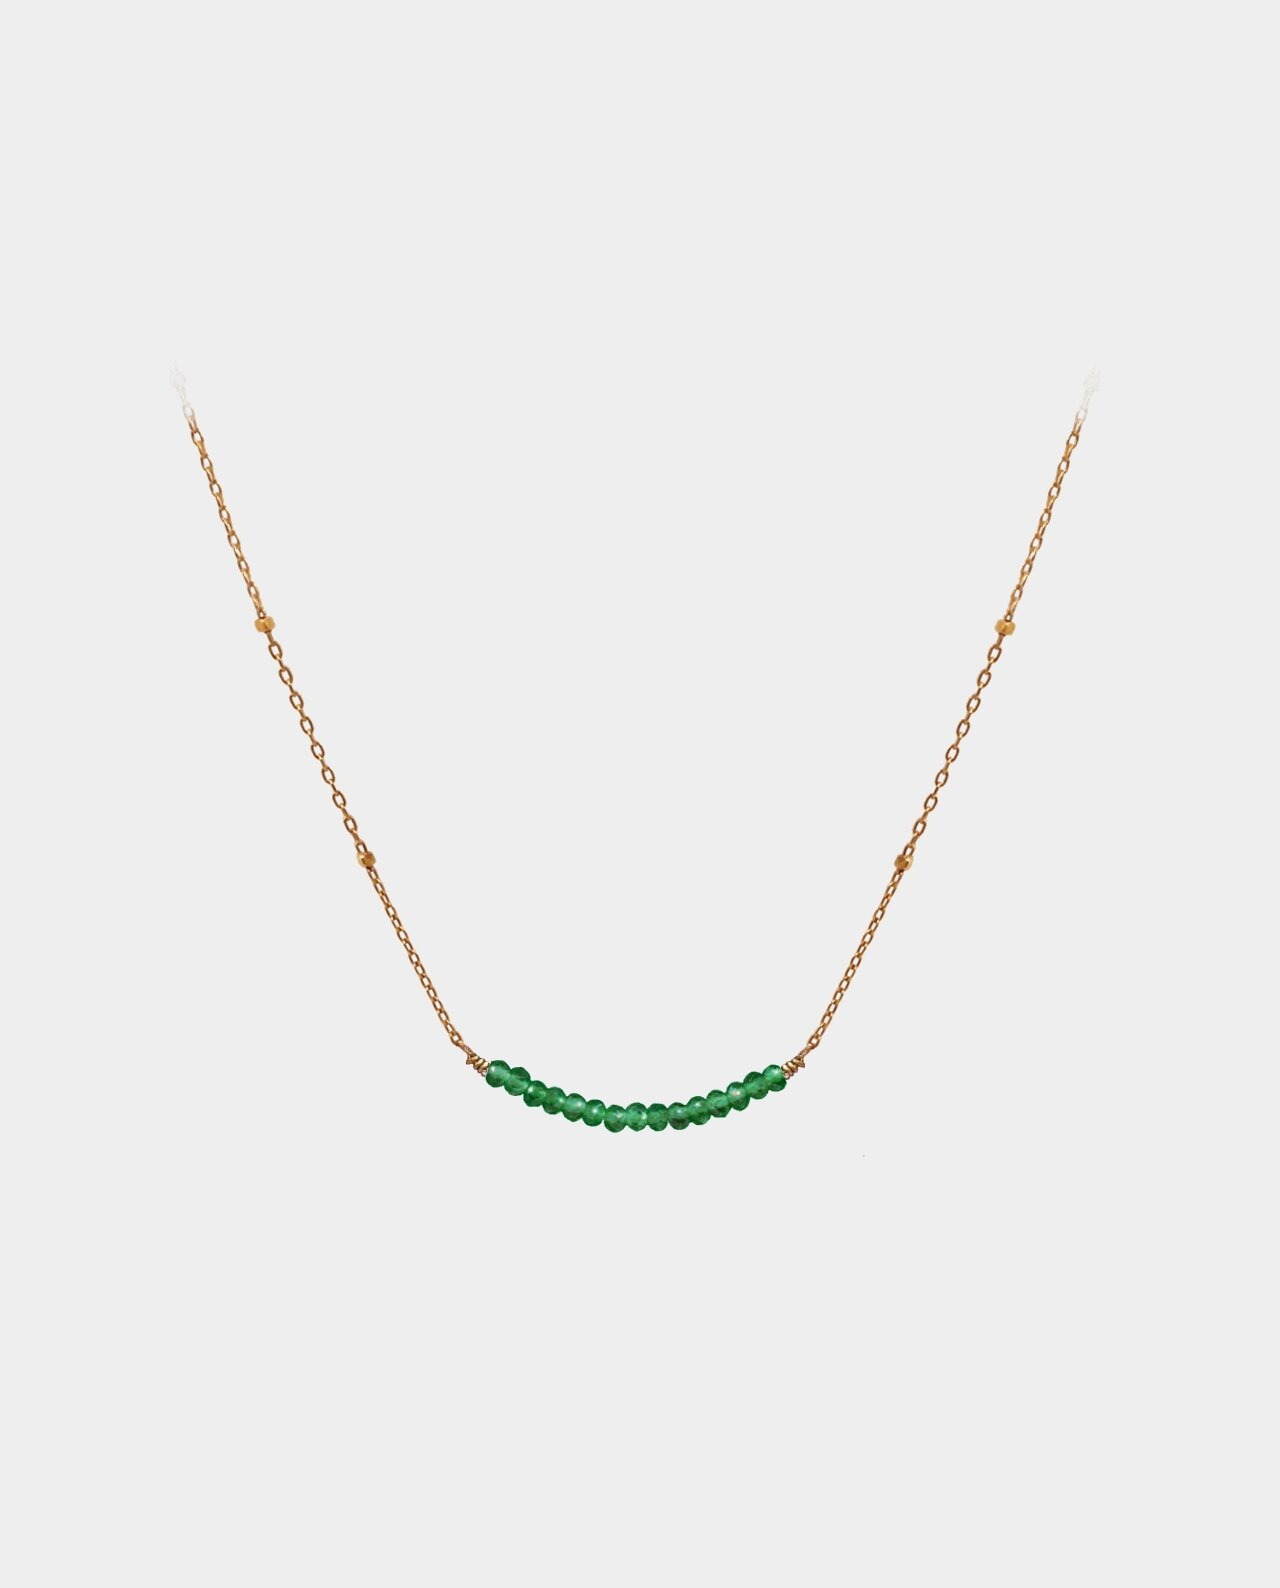 Handmade necklace with green onyx that elegantly follows your neckline and accentuates your personality